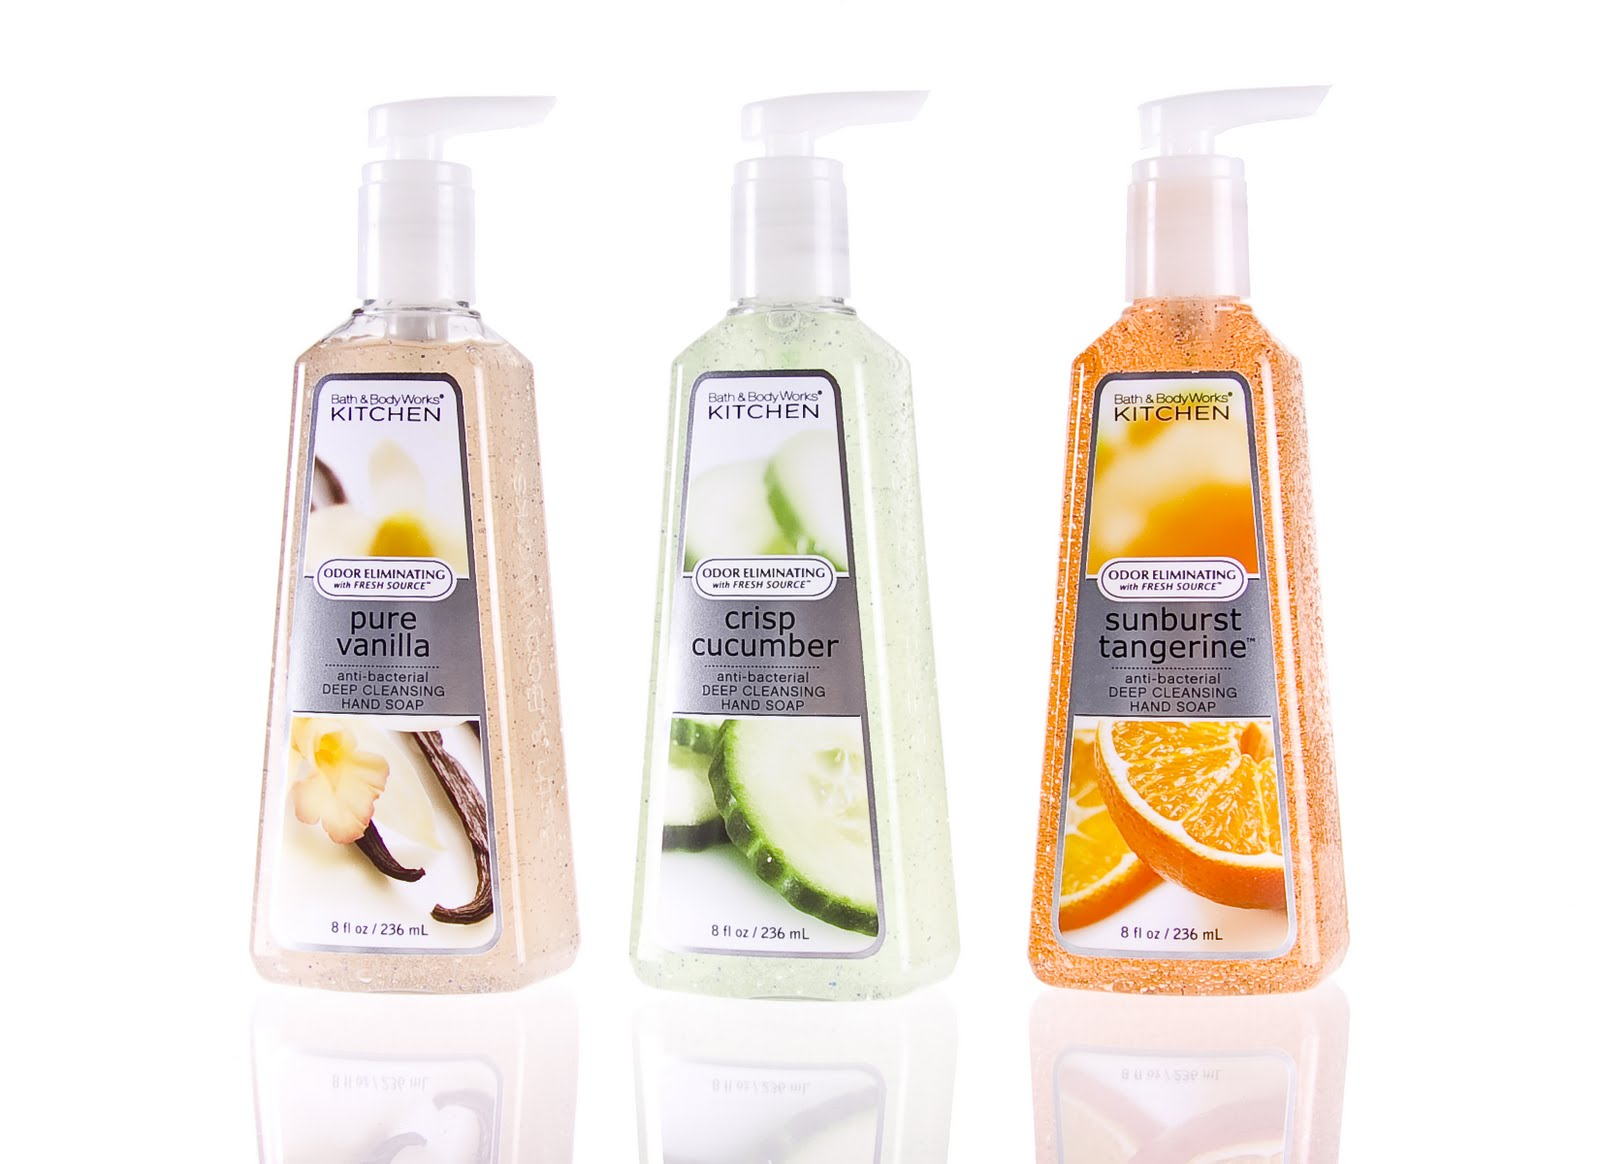 Kitchen Hand Lotion Bath And Body Works Healthy Clean Kitchen Collection